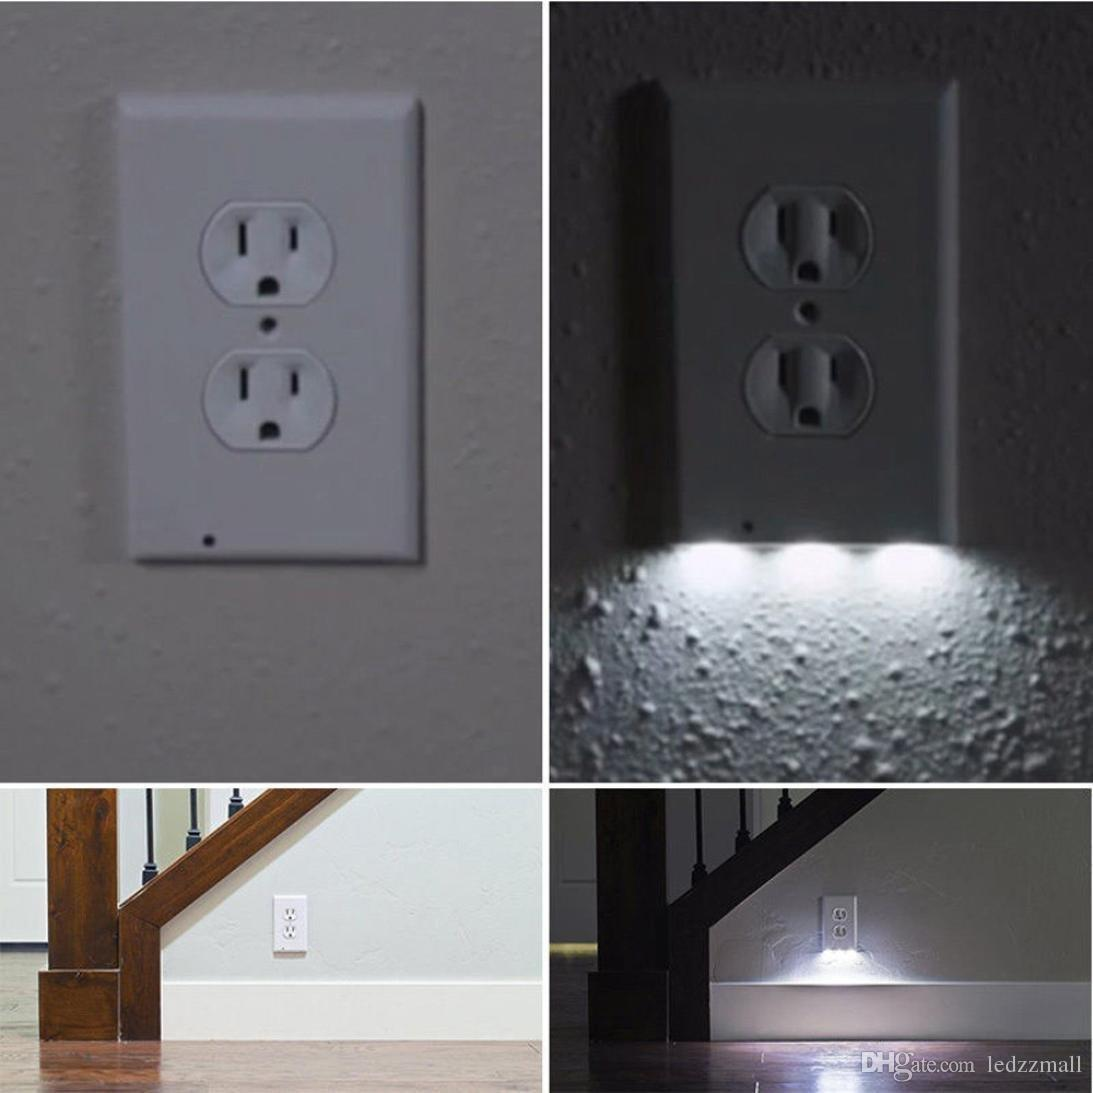 2018 led wall outlet night light plug cover led night angel wall 2018 led wall outlet night light plug cover led night angel wall outlet face hallway bathroom light white from ledzzmall 453 dhgate mozeypictures Choice Image